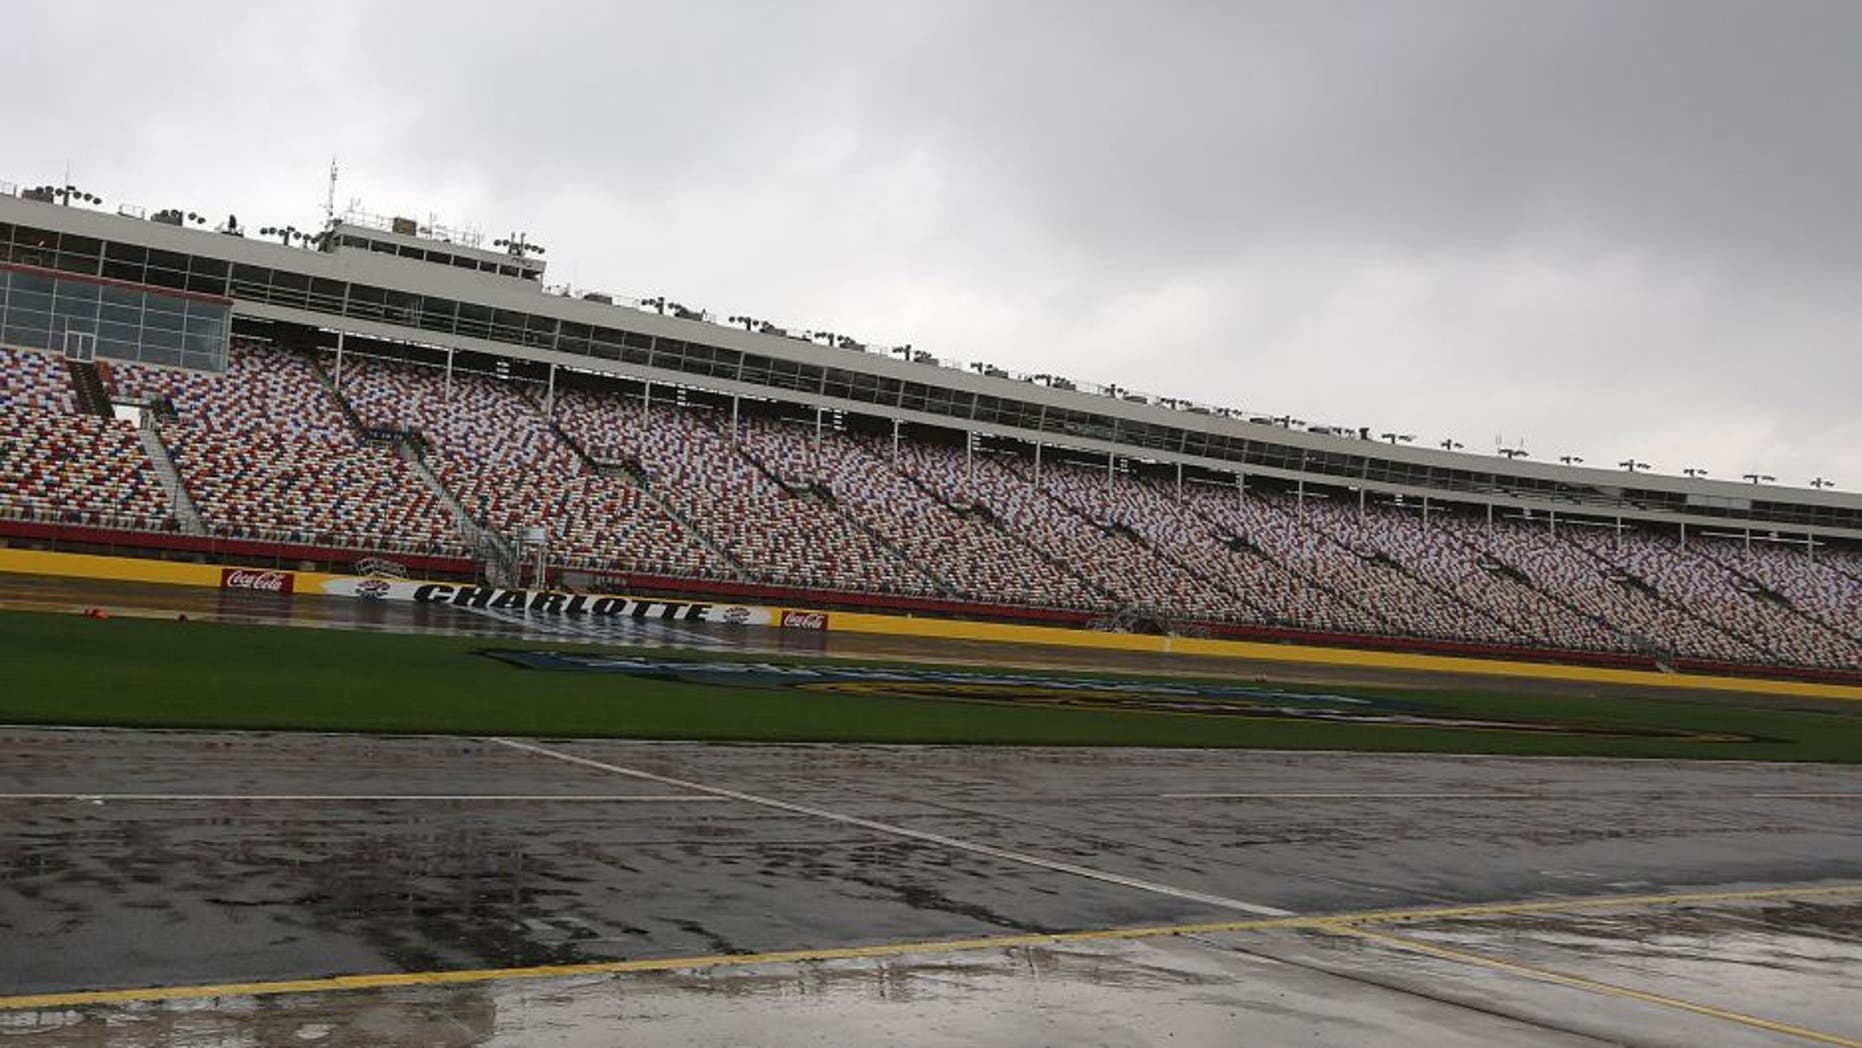 CHARLOTTE, NC - MAY 15: Rain falls on the speedway prior to practice being cancelled for the NASCAR Camping World Truck Series NC Education Lottery 200 at Charlotte Motor Speedway on May 15, 2014 in Charlotte, North Carolina. (Photo by Jerry Markland/Getty Images)